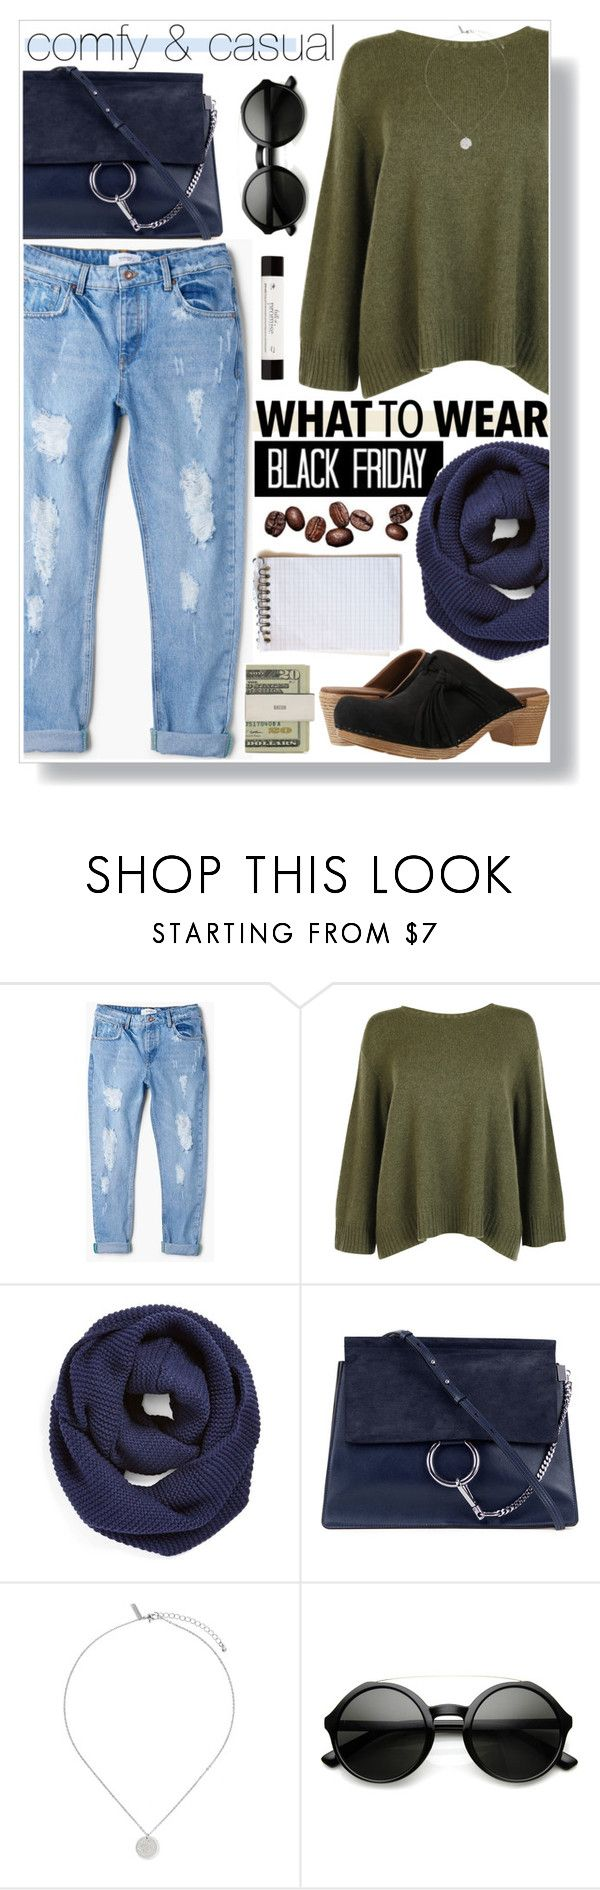 """""""Black Friday Attire"""" by cmelrose ❤ liked on Polyvore featuring MANGO, The Row, BP., Chloé, Topshop, ZeroUV, Dansko, philosophy and Jack Spade"""